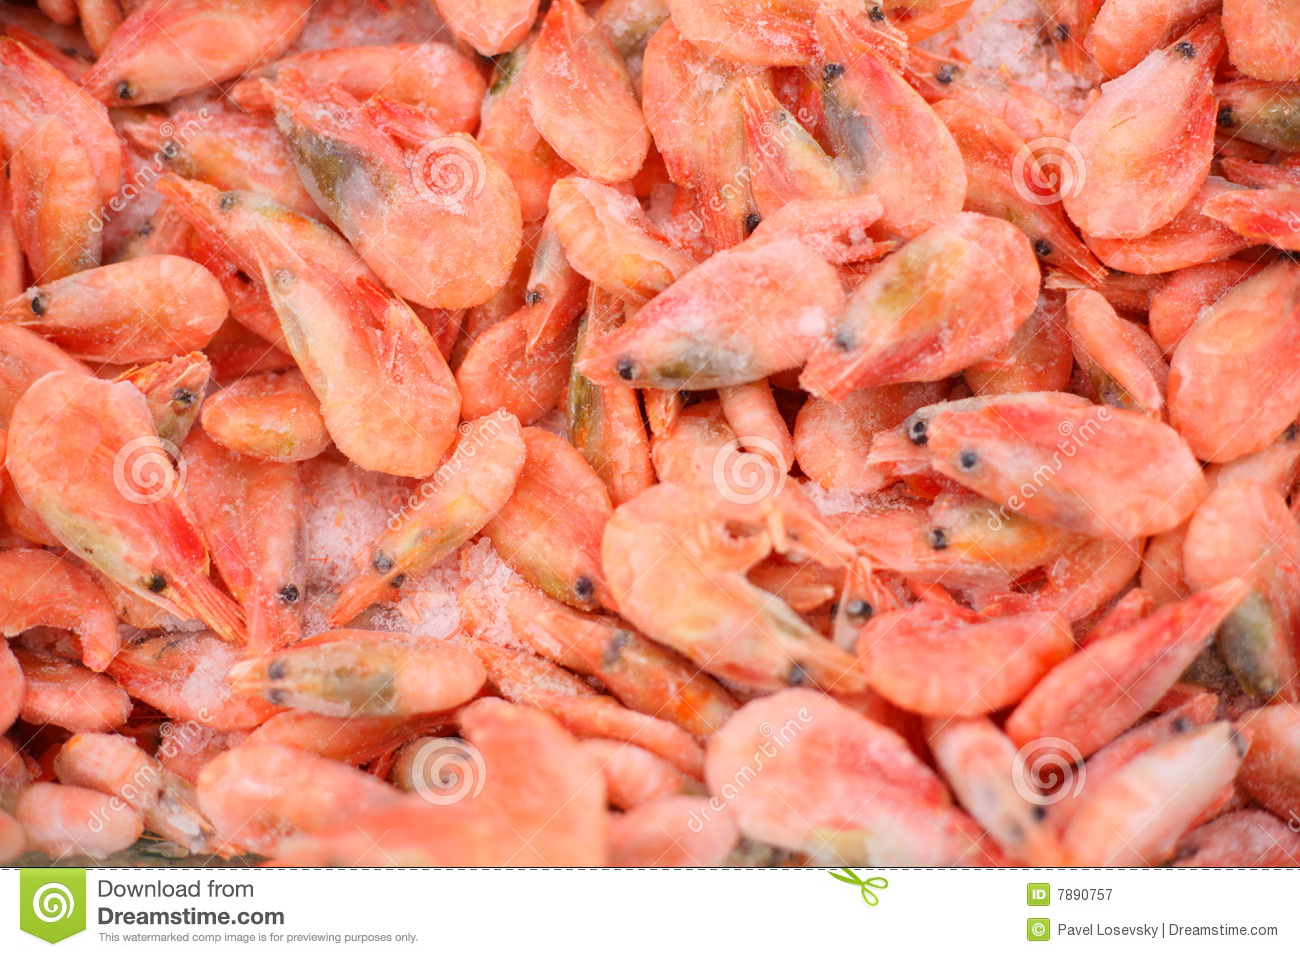 how to clean frozen shrimp